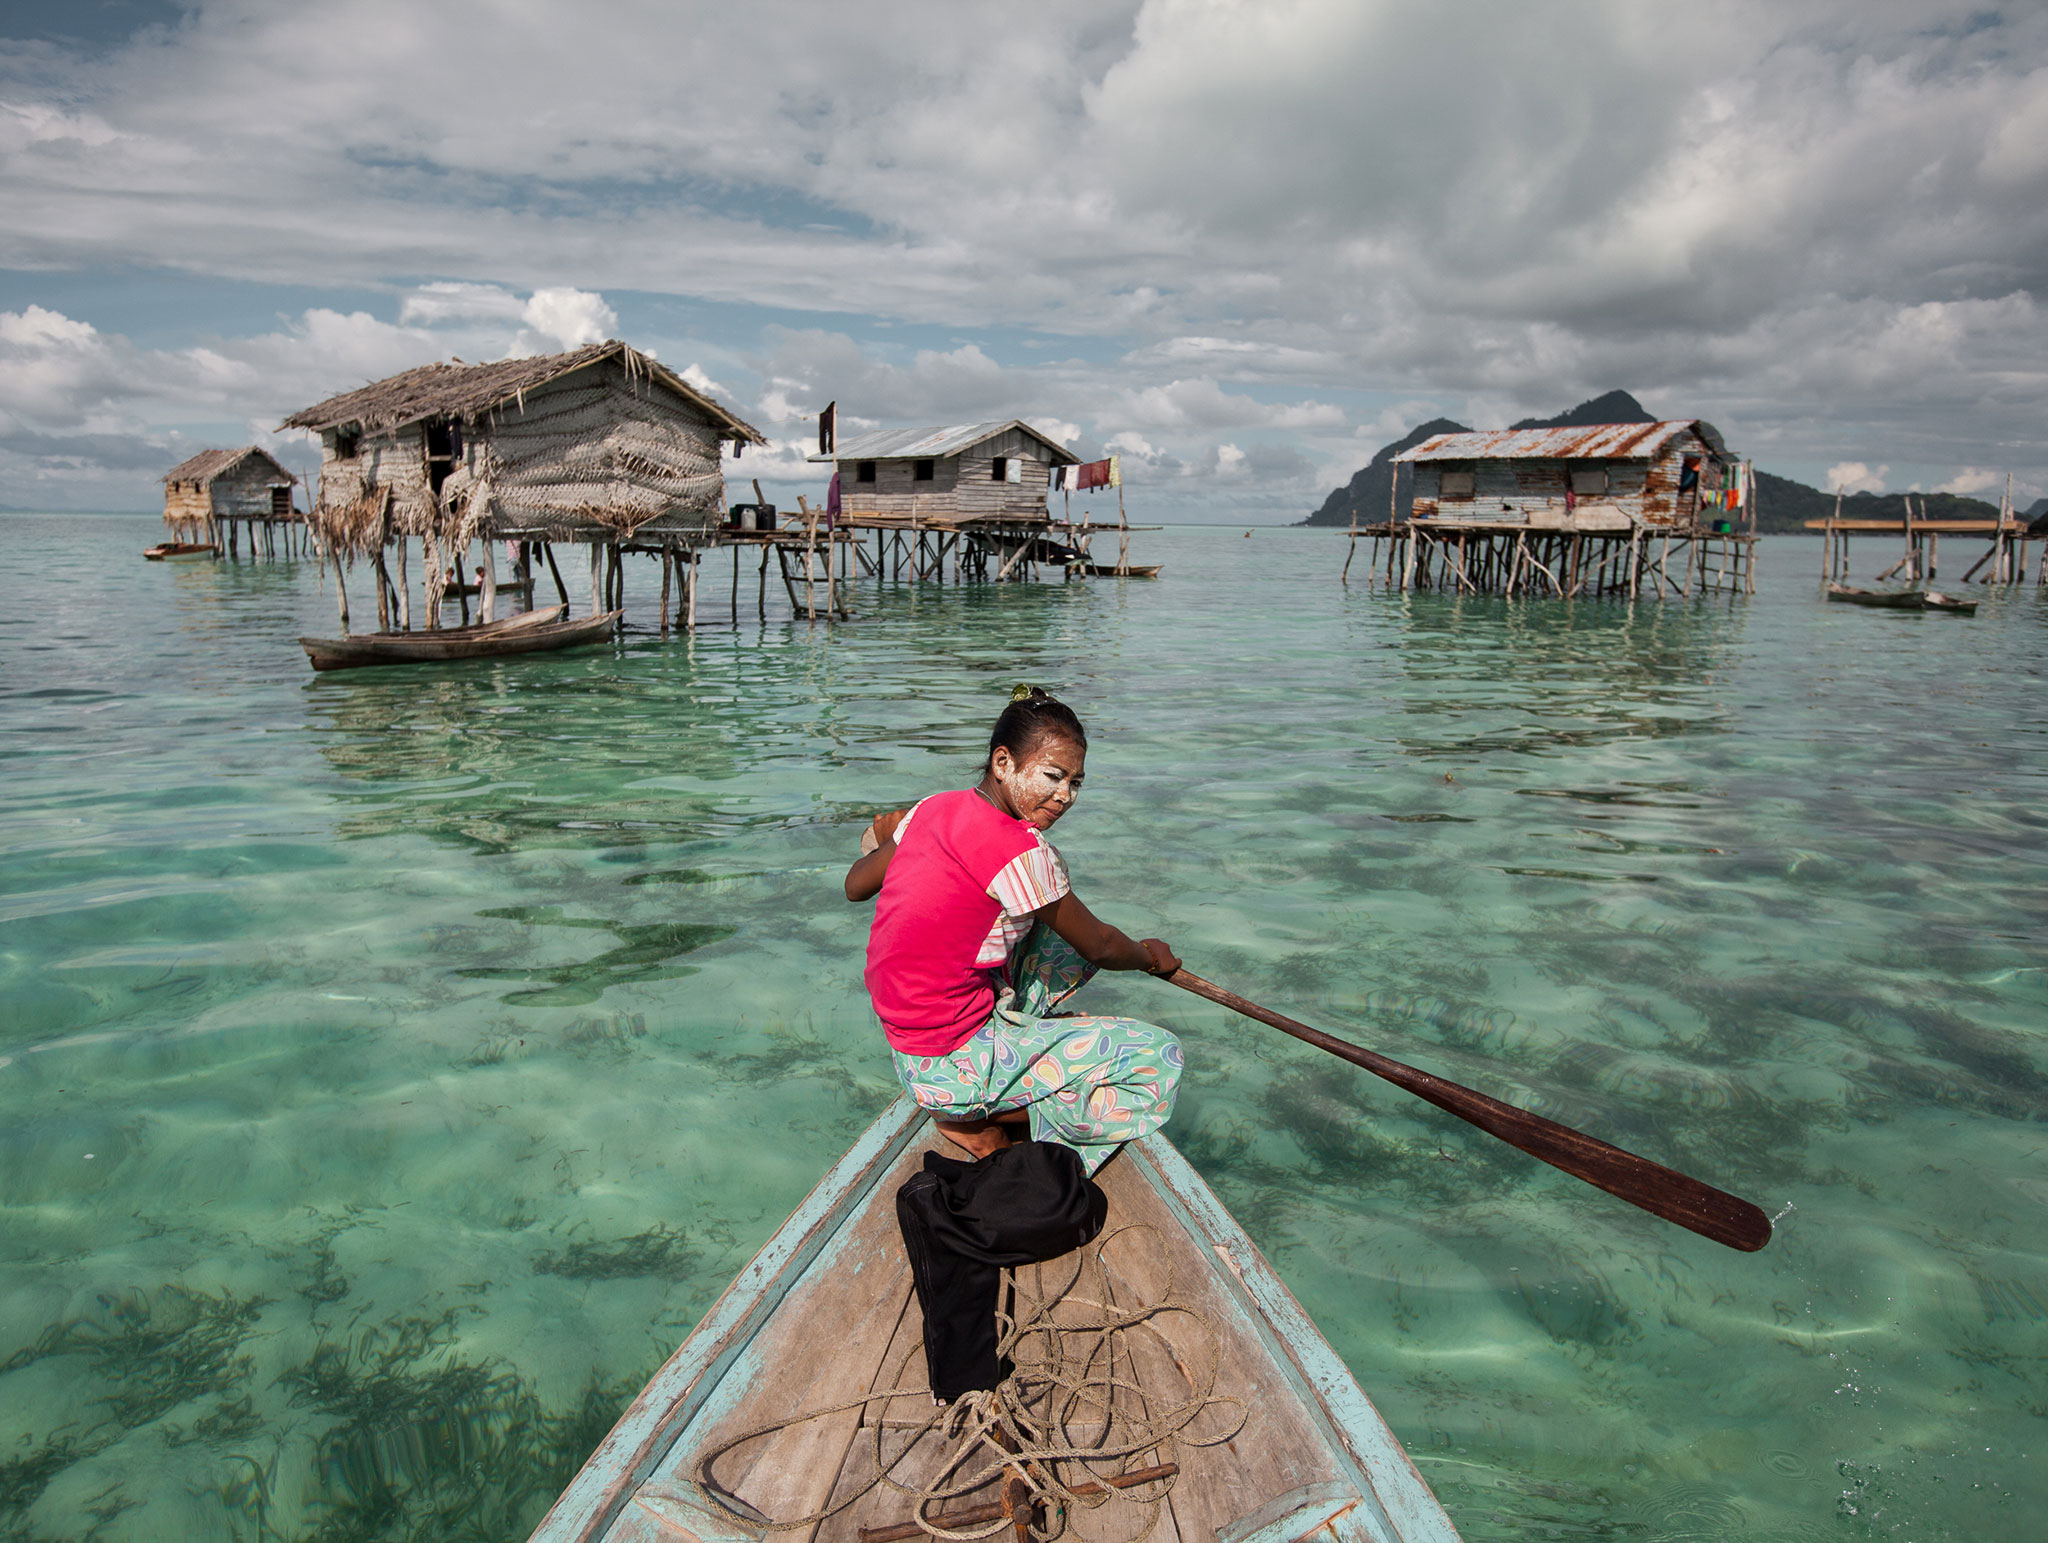 A Bajau Laut girl making her way to a friend's house.